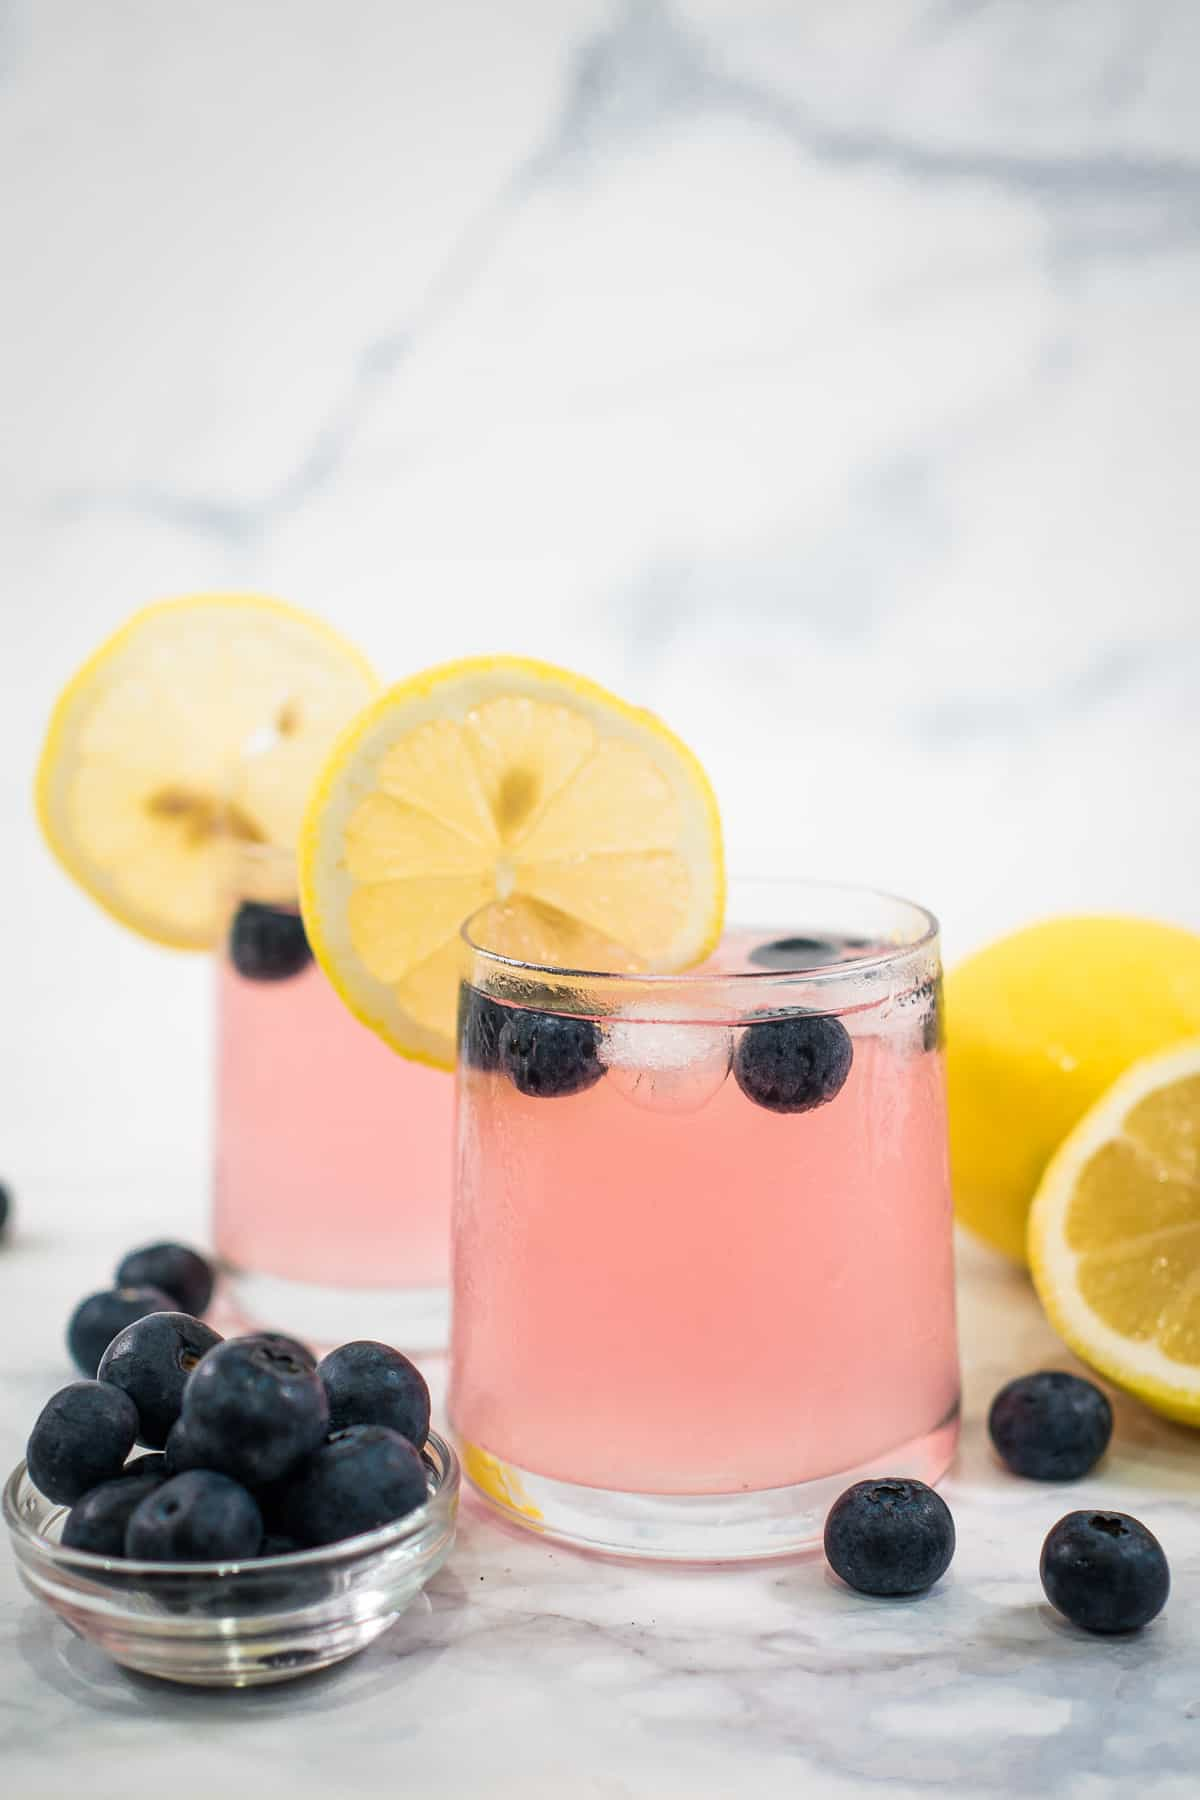 2 glasses of pink lemonade with blueberries in the glass and a slice of lemon on the rim